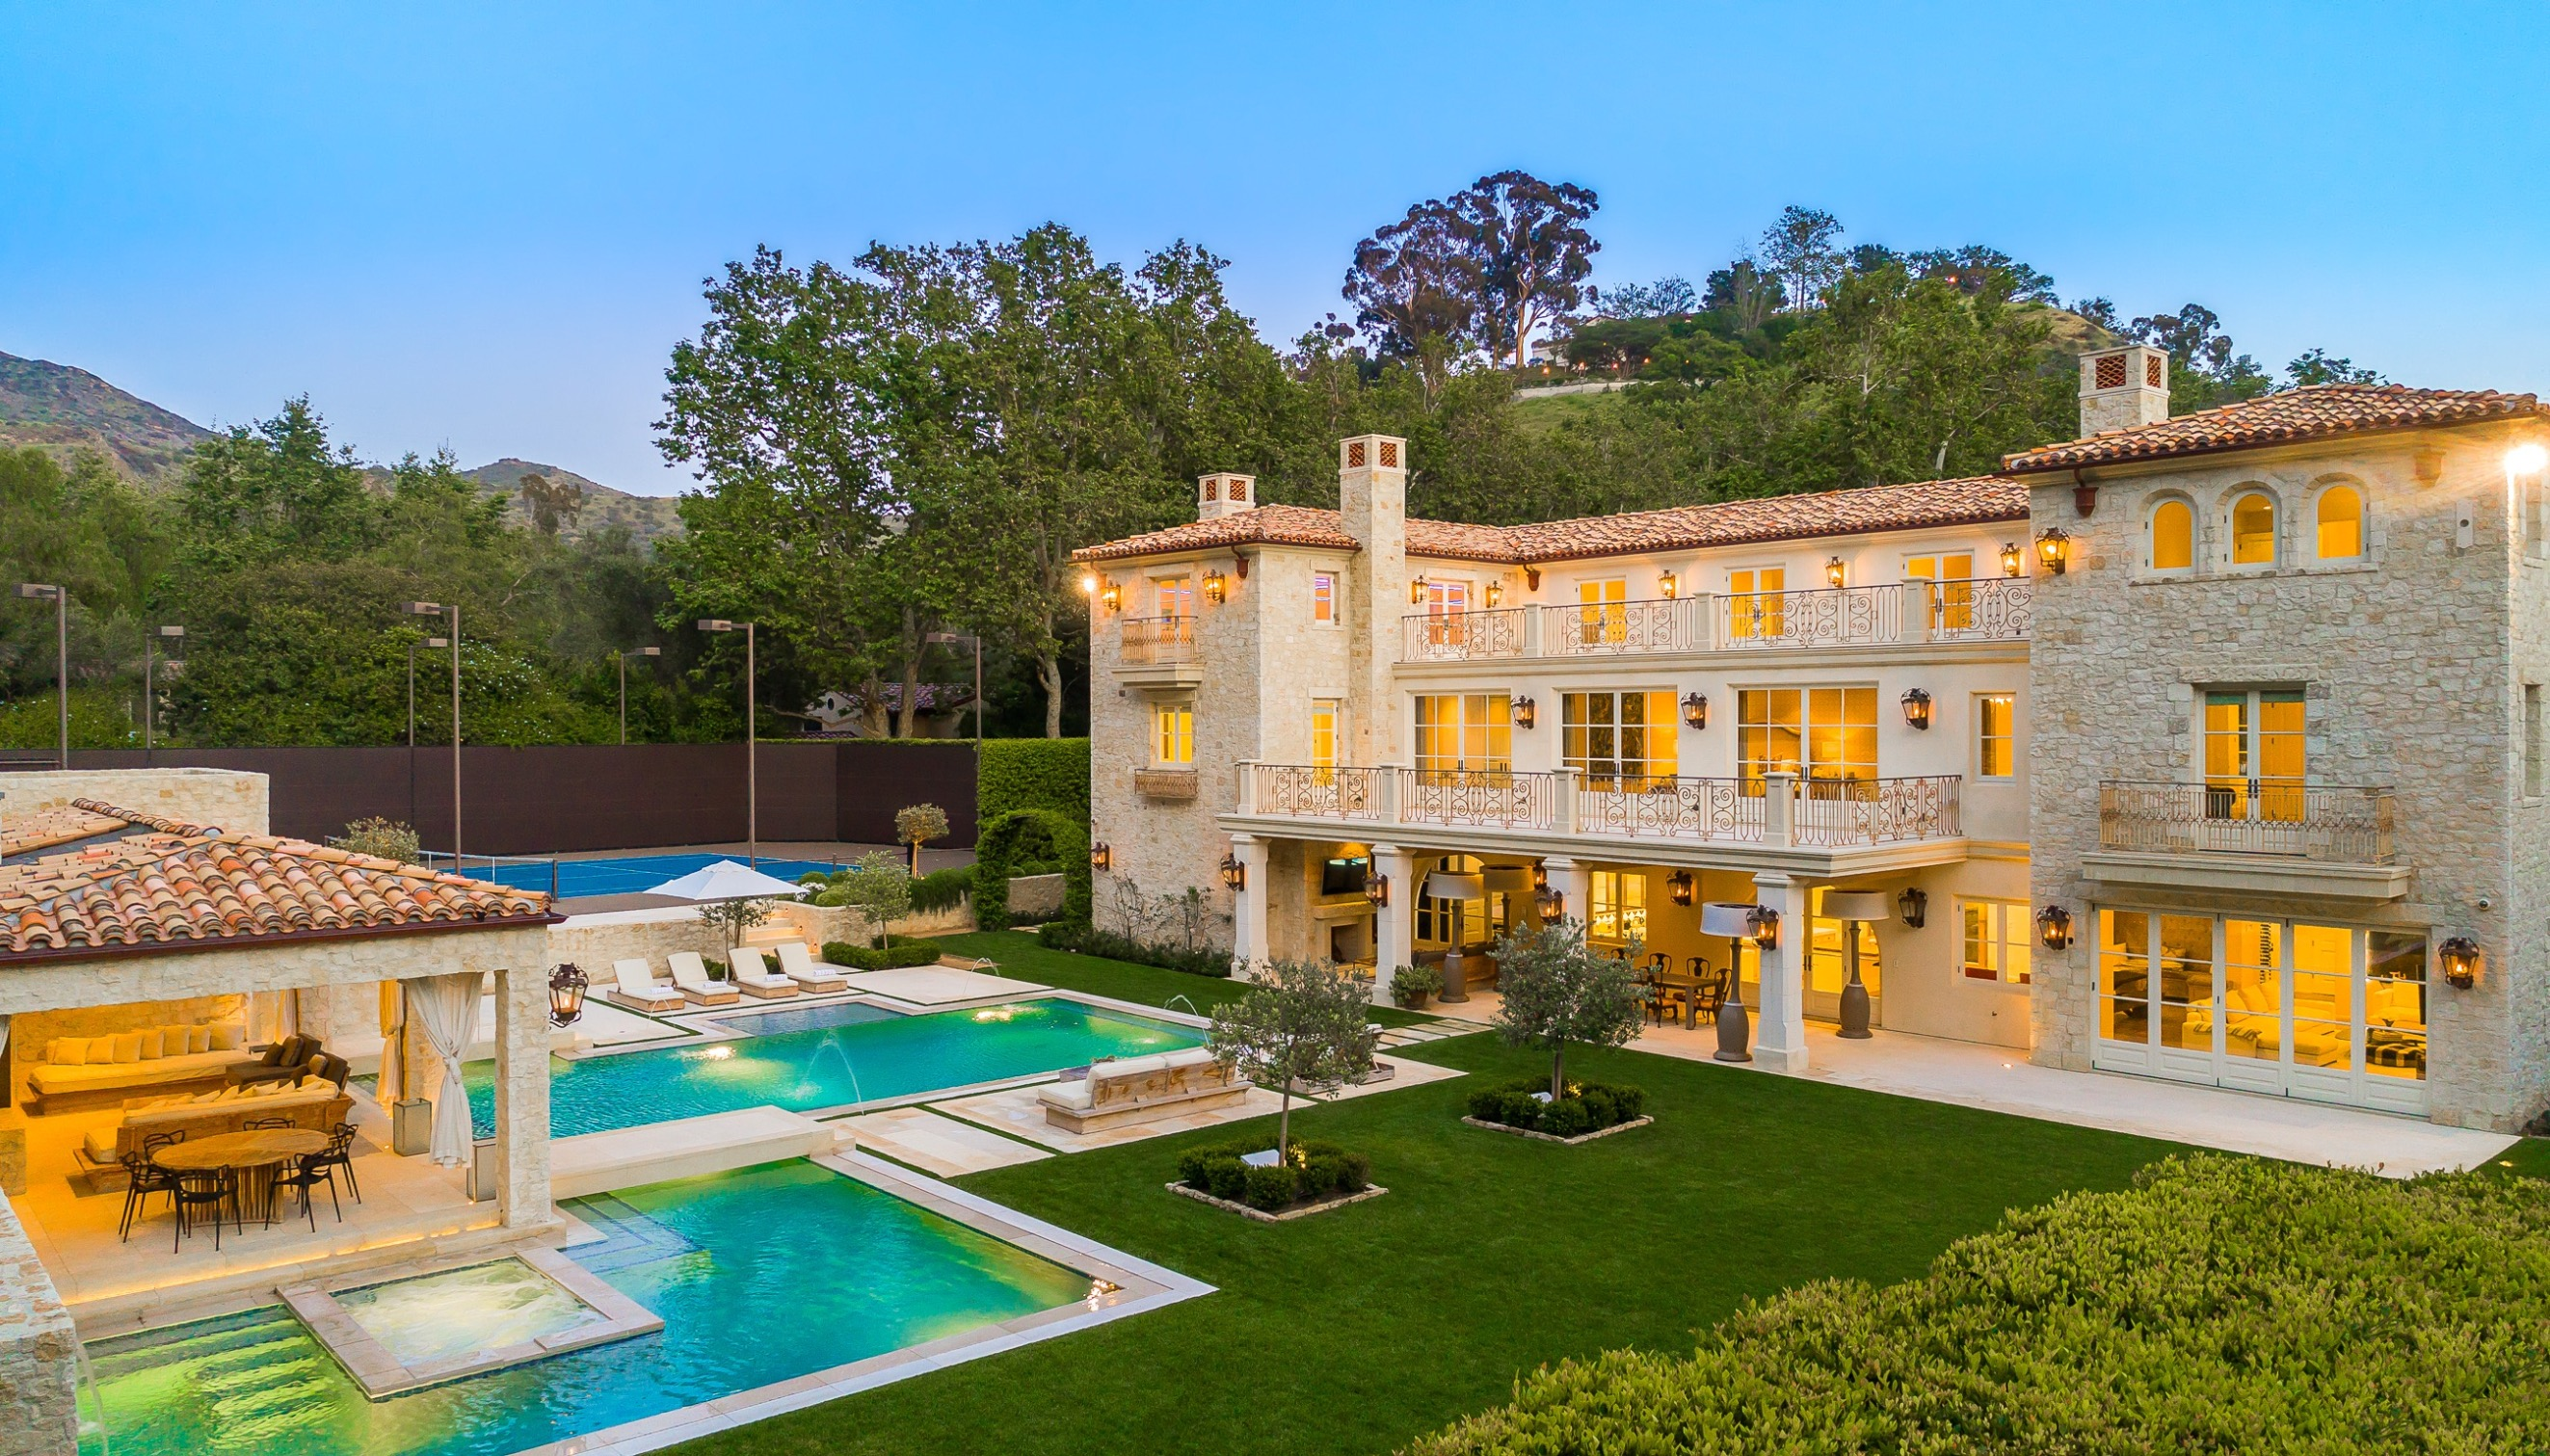 This is the stunning Malibu mansion where Harry and Meghan Markle are reportedly planning to stay to test out Southern California living post Megxit. The Sussexes  who officially step down as senior royals on March 31  are said to be planning a trip to Petra Manor, which costs an eye-watering ,900-a-night to rent. The couple are said to be keen to have a base in California, and this property will give them the chance to experience what living in the state would be like. The property boasts eight bedrooms, ten bathrooms, an outdoor pool and BBQ area, a home movie theater, dance studio and more. It is hosted by Stay Awhile Villas. While the companys owner wouldnt confirm Meghan and Harrys stay, he did explain to DailyMail.com: 'Stay Awhile Villas is often contacted by high profile families seeking to test neighborhoods throughout Los Angeles before making any move permanent. 'This is the perfect property for anyone wanting to move to the area and Harry and Meghan will want to see if Malibu suits their lifestyle. 'The house is a short term rental, many people come to Malibu looking for a home and they will rent somewhere first to see if it makes sense for them and their family. The source added: 'The house is a short term rental, many people come to Malibu looking for a home and they will rent somewhere first to see if it makes sense for them and their family. 'Homes in Malibu don't come cheap so it wouldn't make any sense to buy so quickly. Harry and Meghan have said they plan to split their time between the UK and North America; they have spent the past few months at a stunning million waterside mansion on Canadas Vancouver Island with their baby son Archie. But according to insiders, the pair are also keen to have a California residence, where they would be nearby to Meghans mother Doria Ragland and have access to Silicon Valley and Hollywood. 10 Mar 2020, Image: 505138638, License: Rights-managed, Restrictions: World Rights, Model Release: no, Credit line: StayAWhileVillas/ MEGA / The Mega Agency / Profimedia